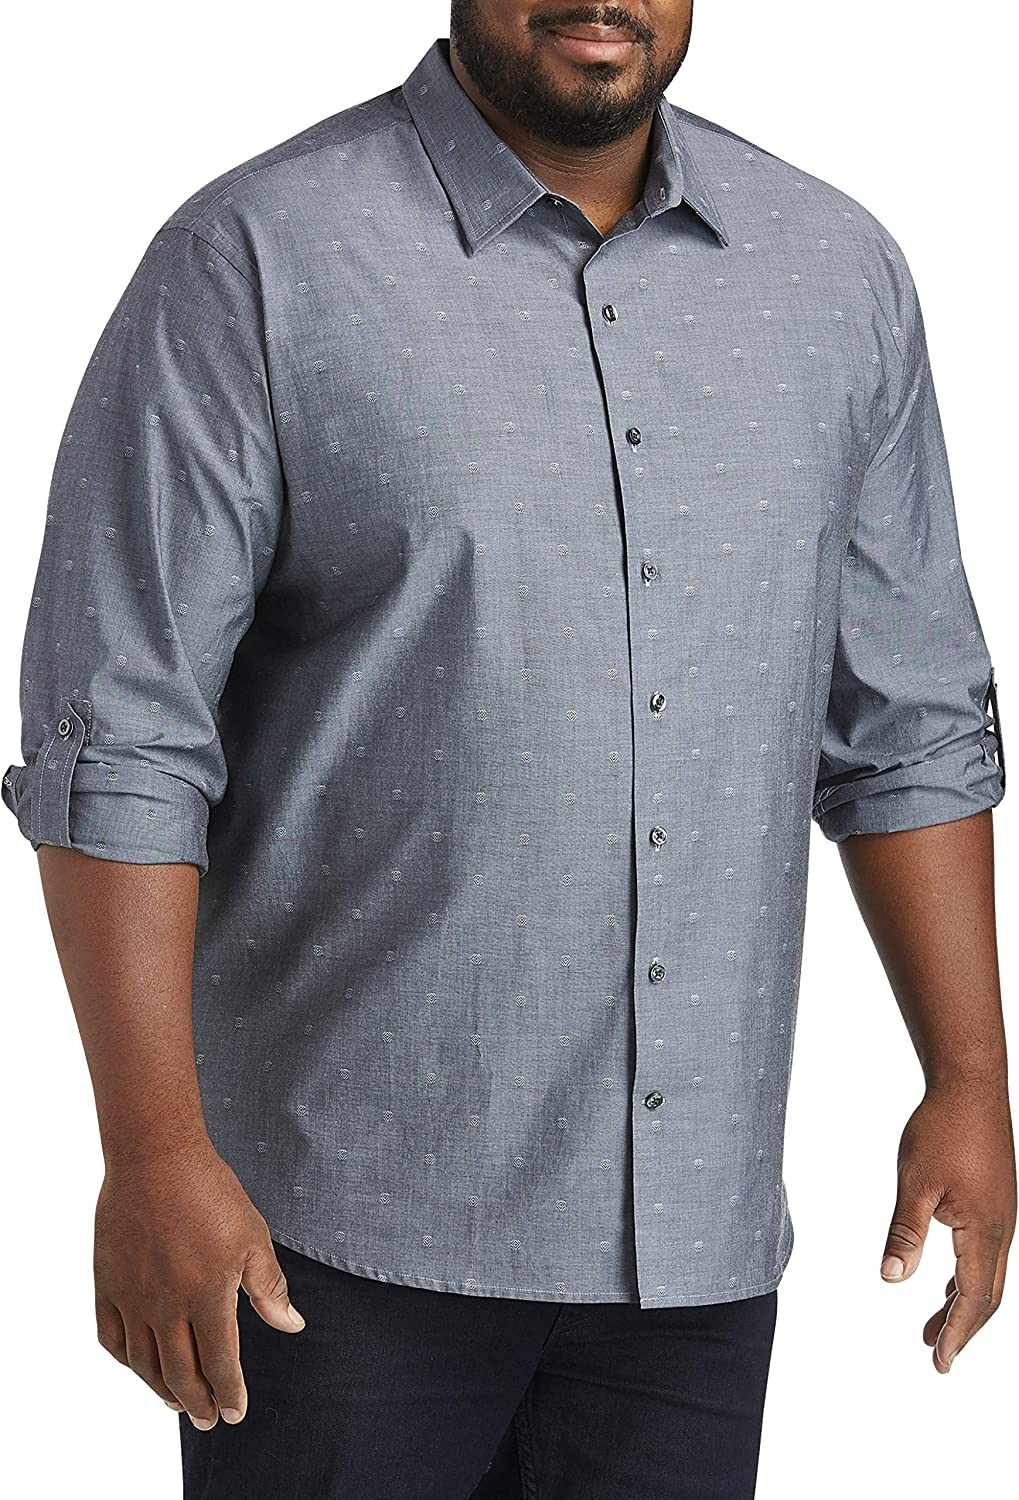 DXL Synrgy Big and Tall Roll-Sleeve Sport Shirt, Eventide